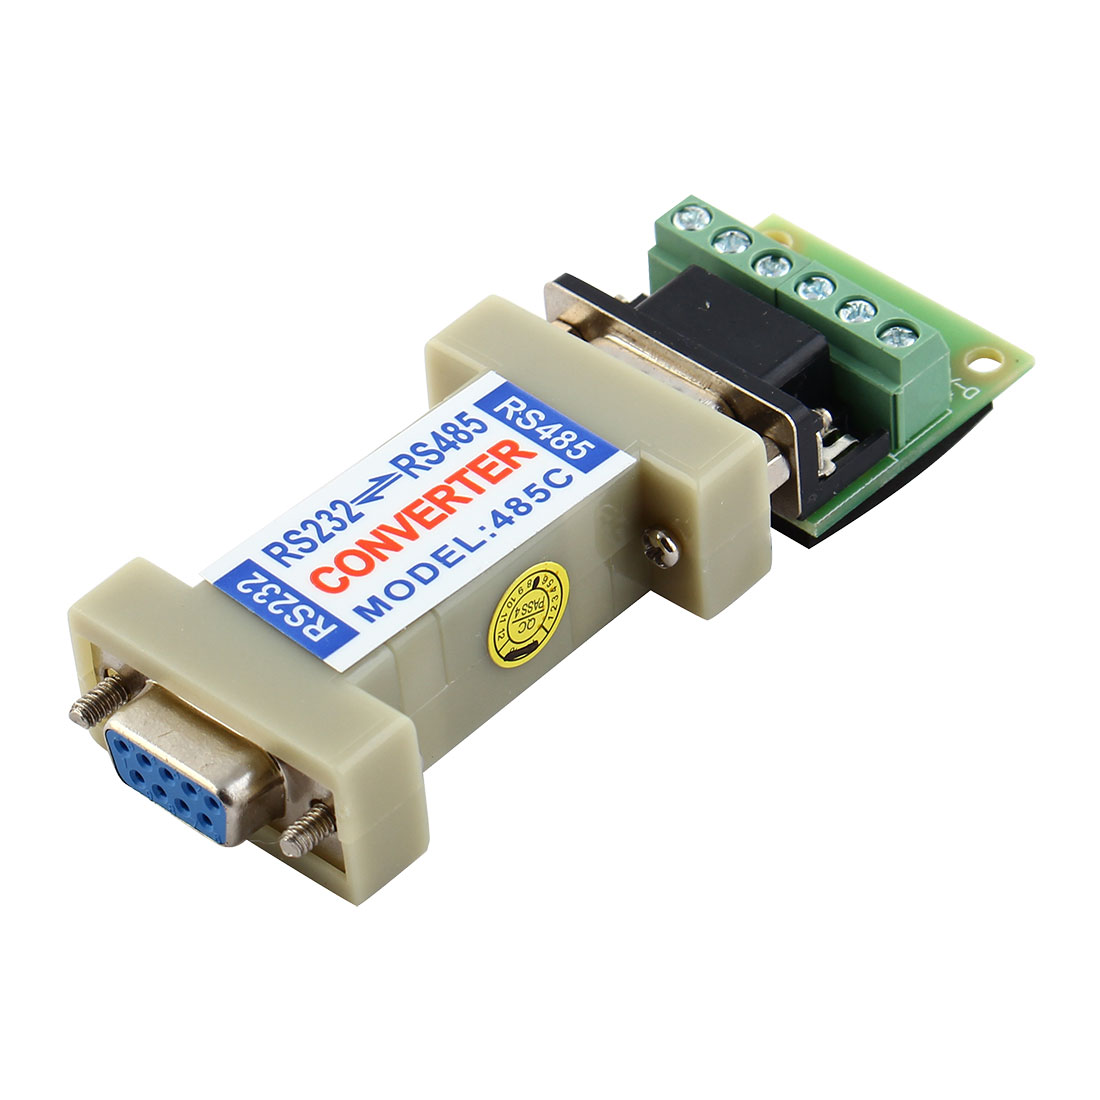 RS232 to RS485 Communication Data Converter Adapter with a Terminal Board